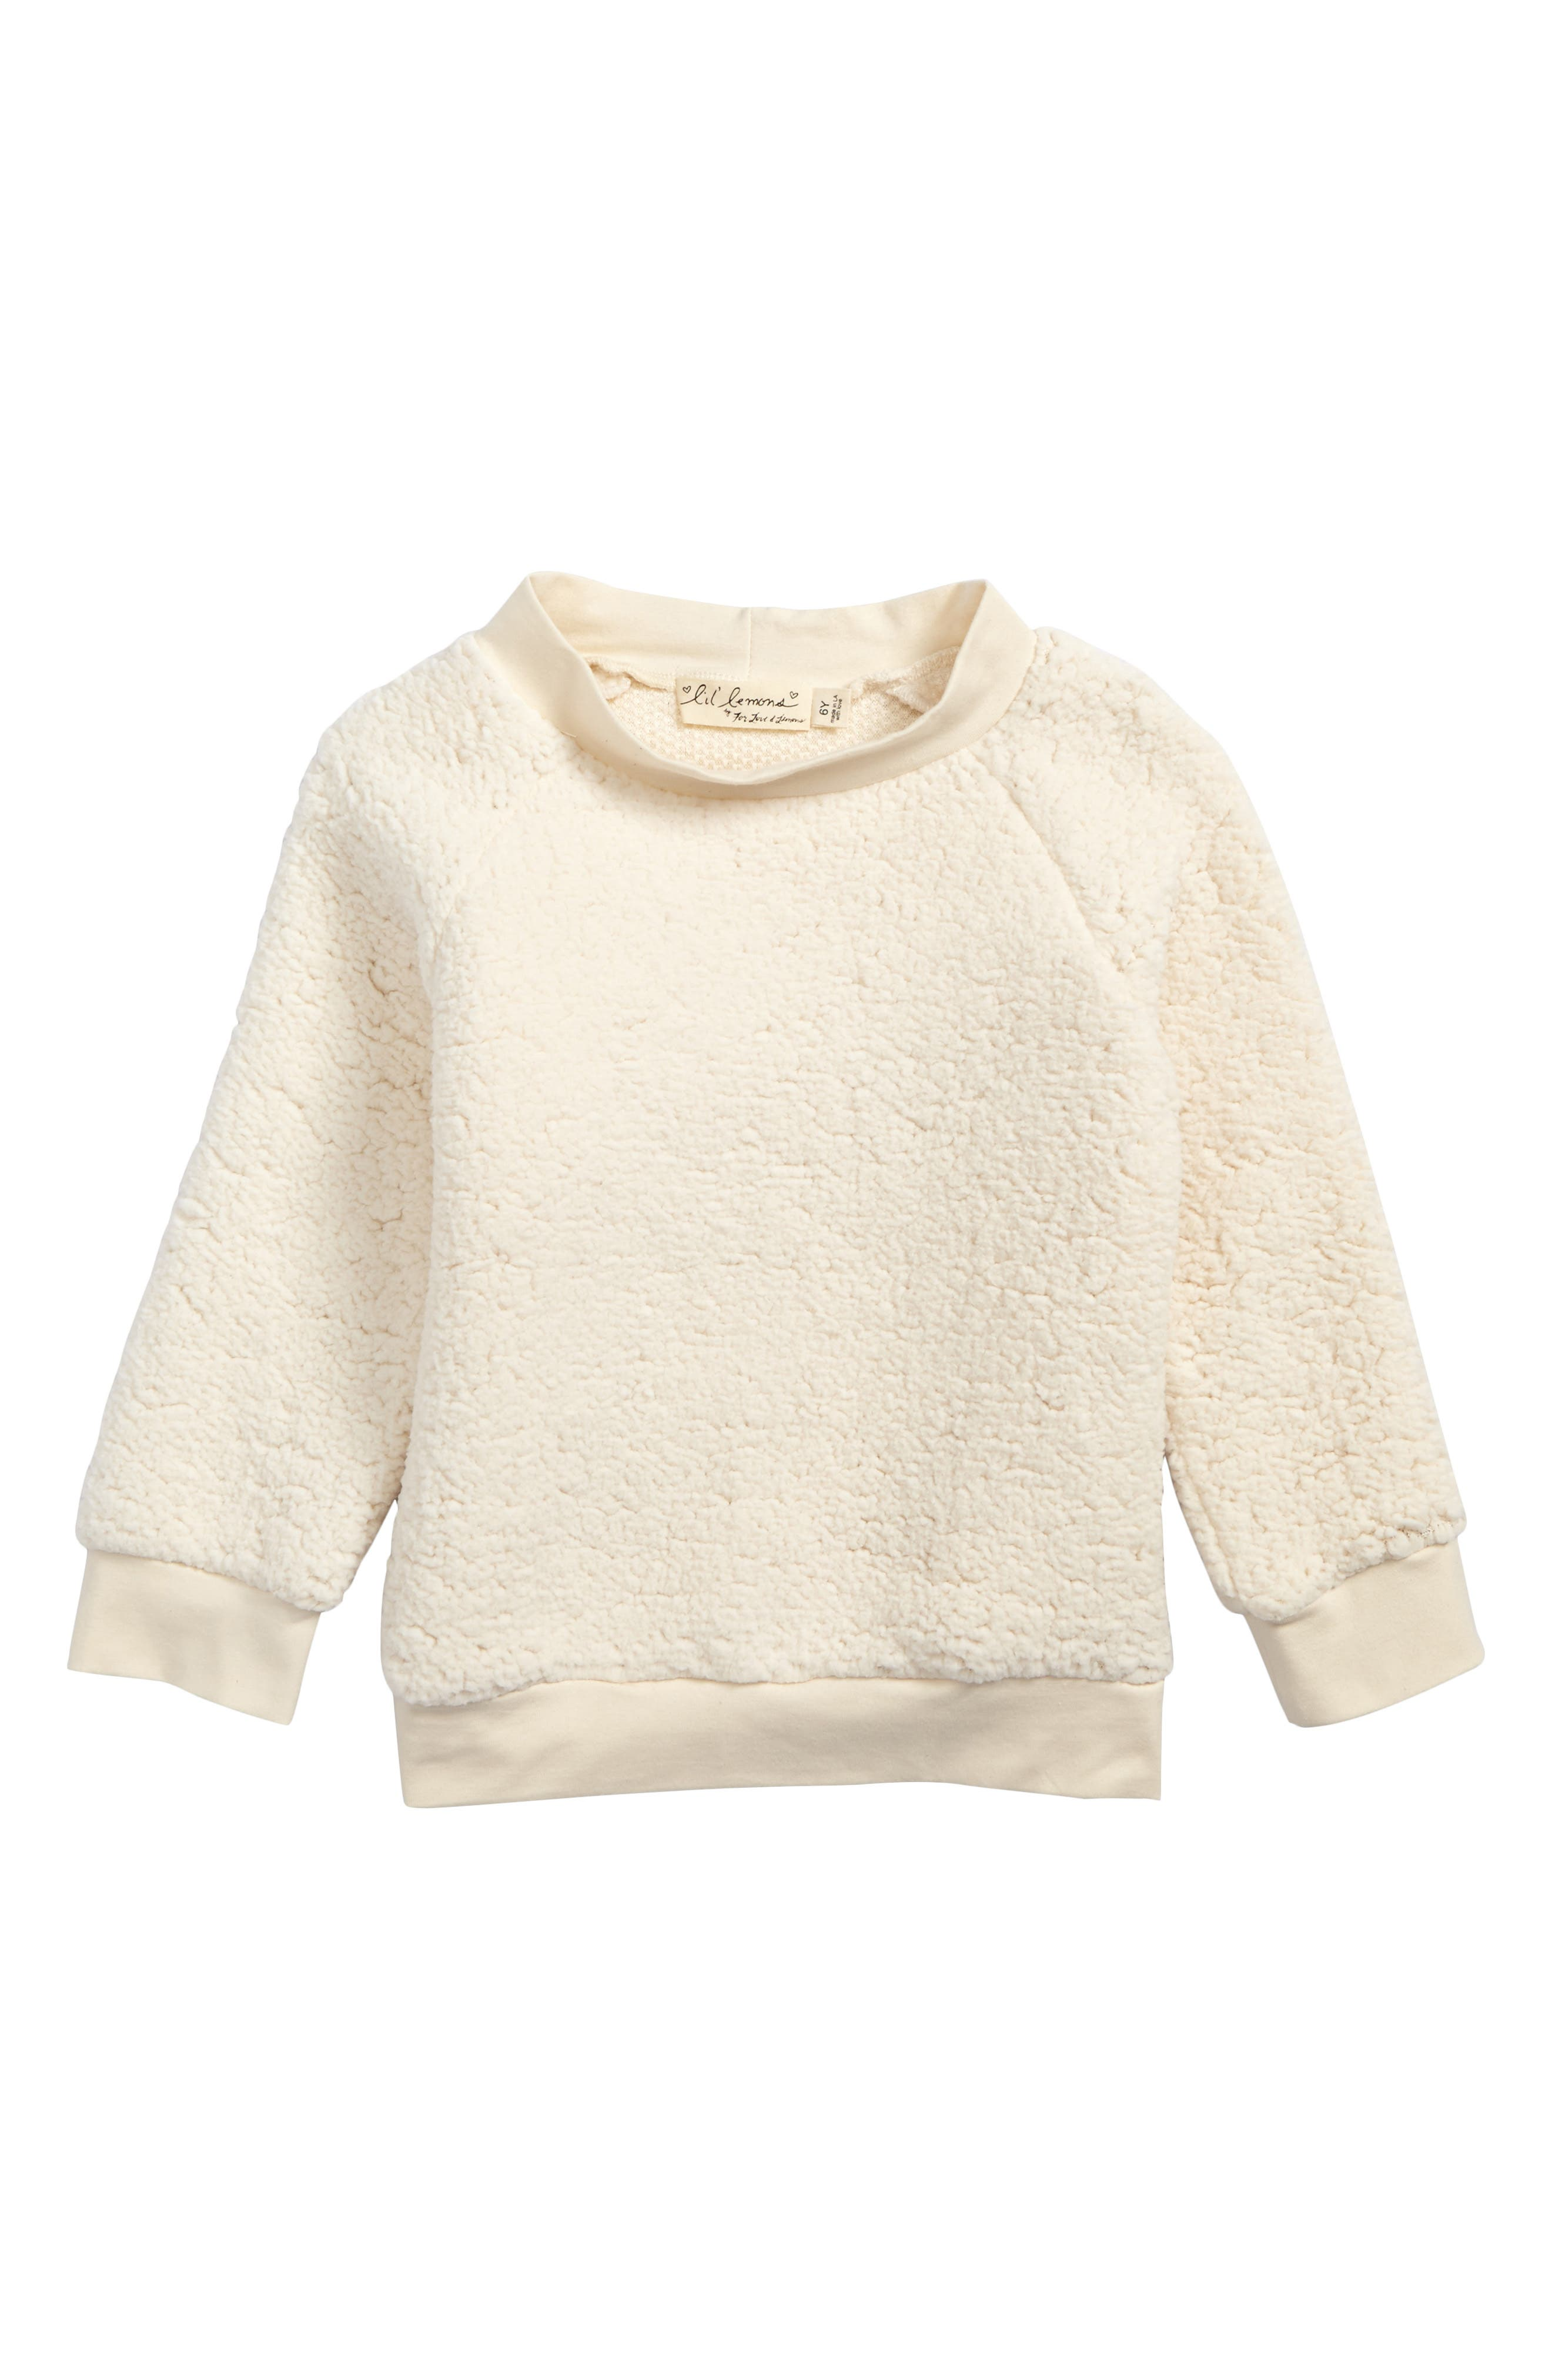 Fuzzy Raglan Sweatshirt,                             Main thumbnail 1, color,                             Ivorycloud